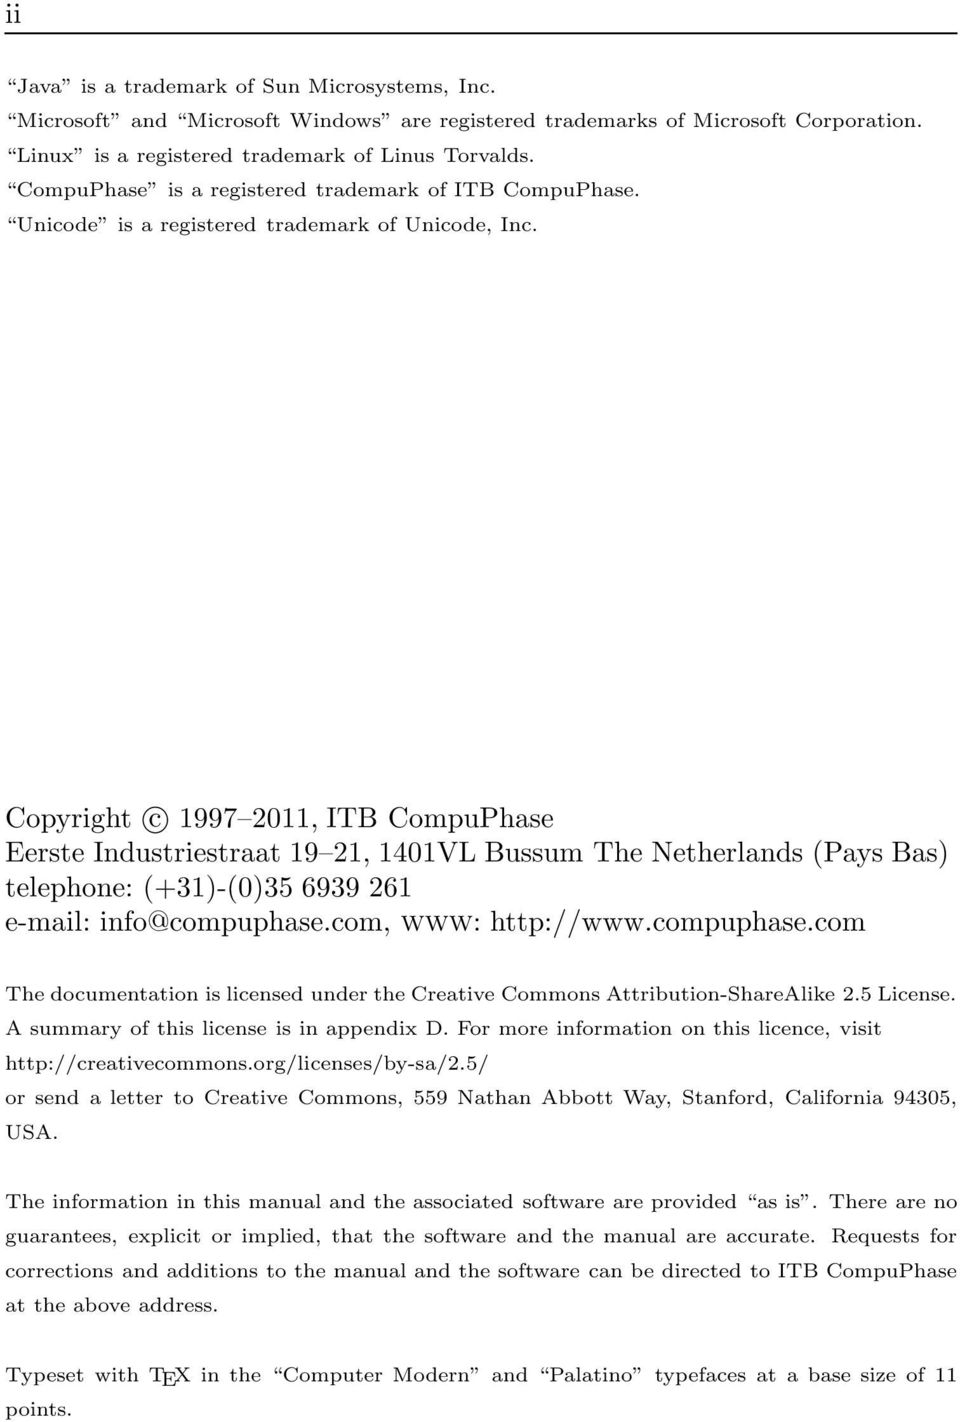 Copyright c 1997 2011, ITB CompuPhase Eerste Industriestraat 19 21, 1401VL Bussum The Netherlands (Pays Bas) telephone: (+31)-(0)35 6939 261 e-mail: info@compuphase.